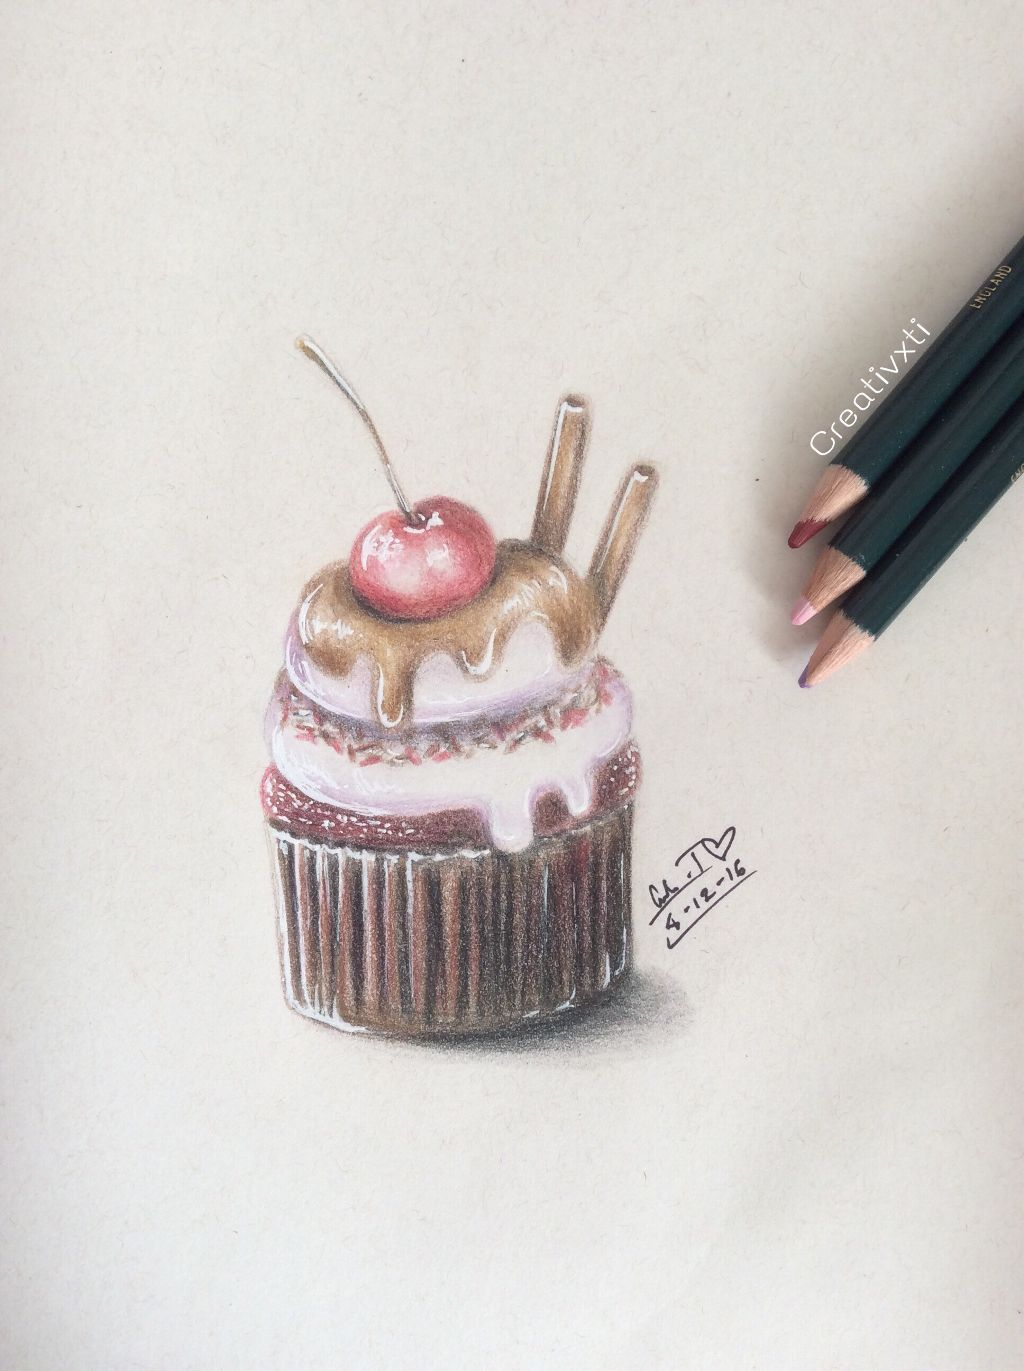 Drew this cupcake a few days ago. Its my birthday today ^ v ^ (I know its quite a typical post for a birthday thing but eh ^^;)